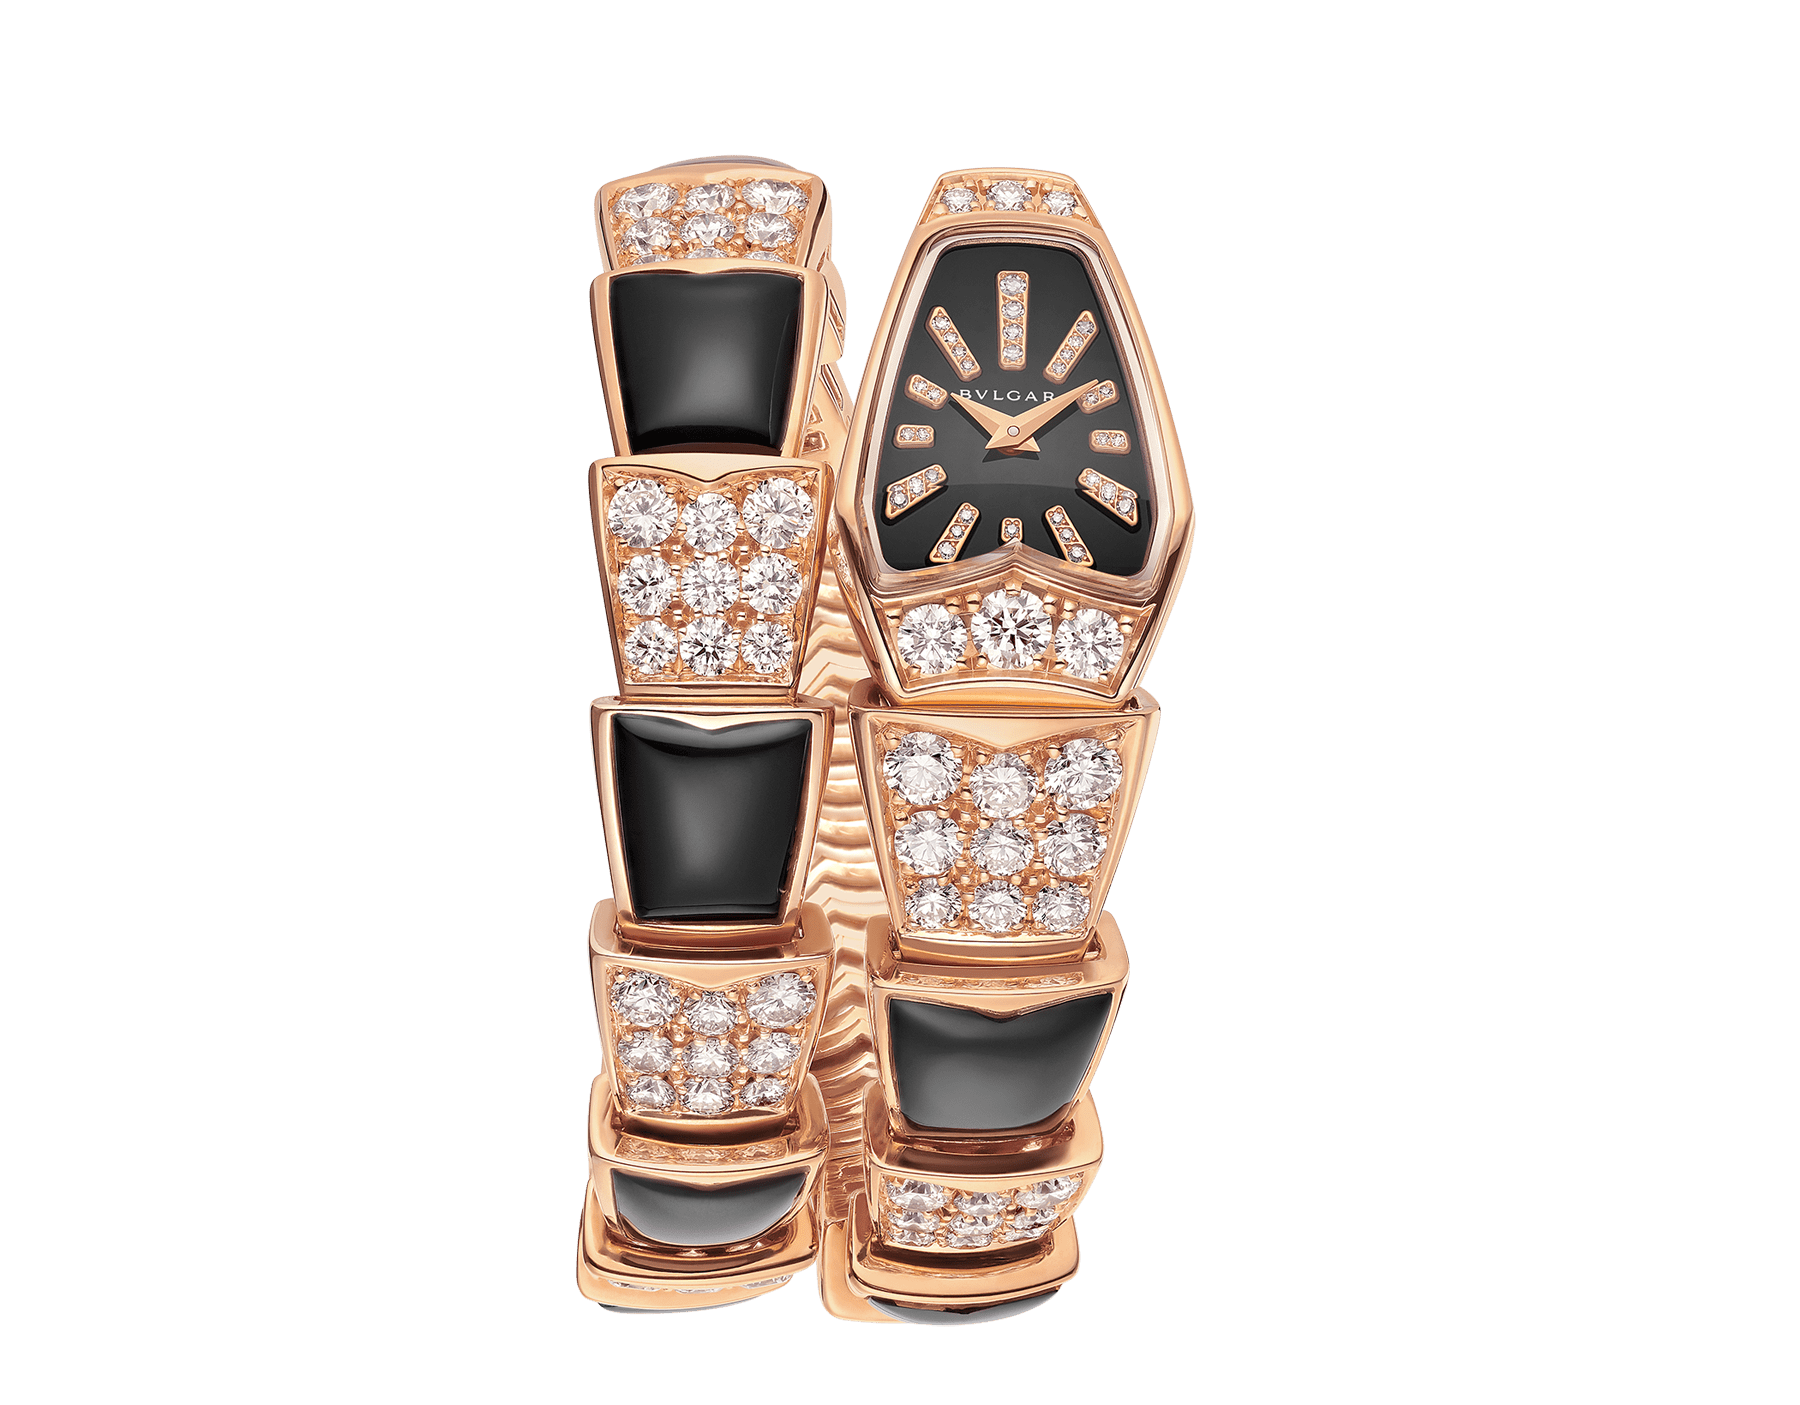 Serpenti Jewellery Watch with 18 kt rose gold case set with brilliant cut diamonds, black sapphire crystal dial, diamond indexes and 18 kt rose gold single spiral bracelet set with brilliant cut diamonds and black onyx. 101790 image 1